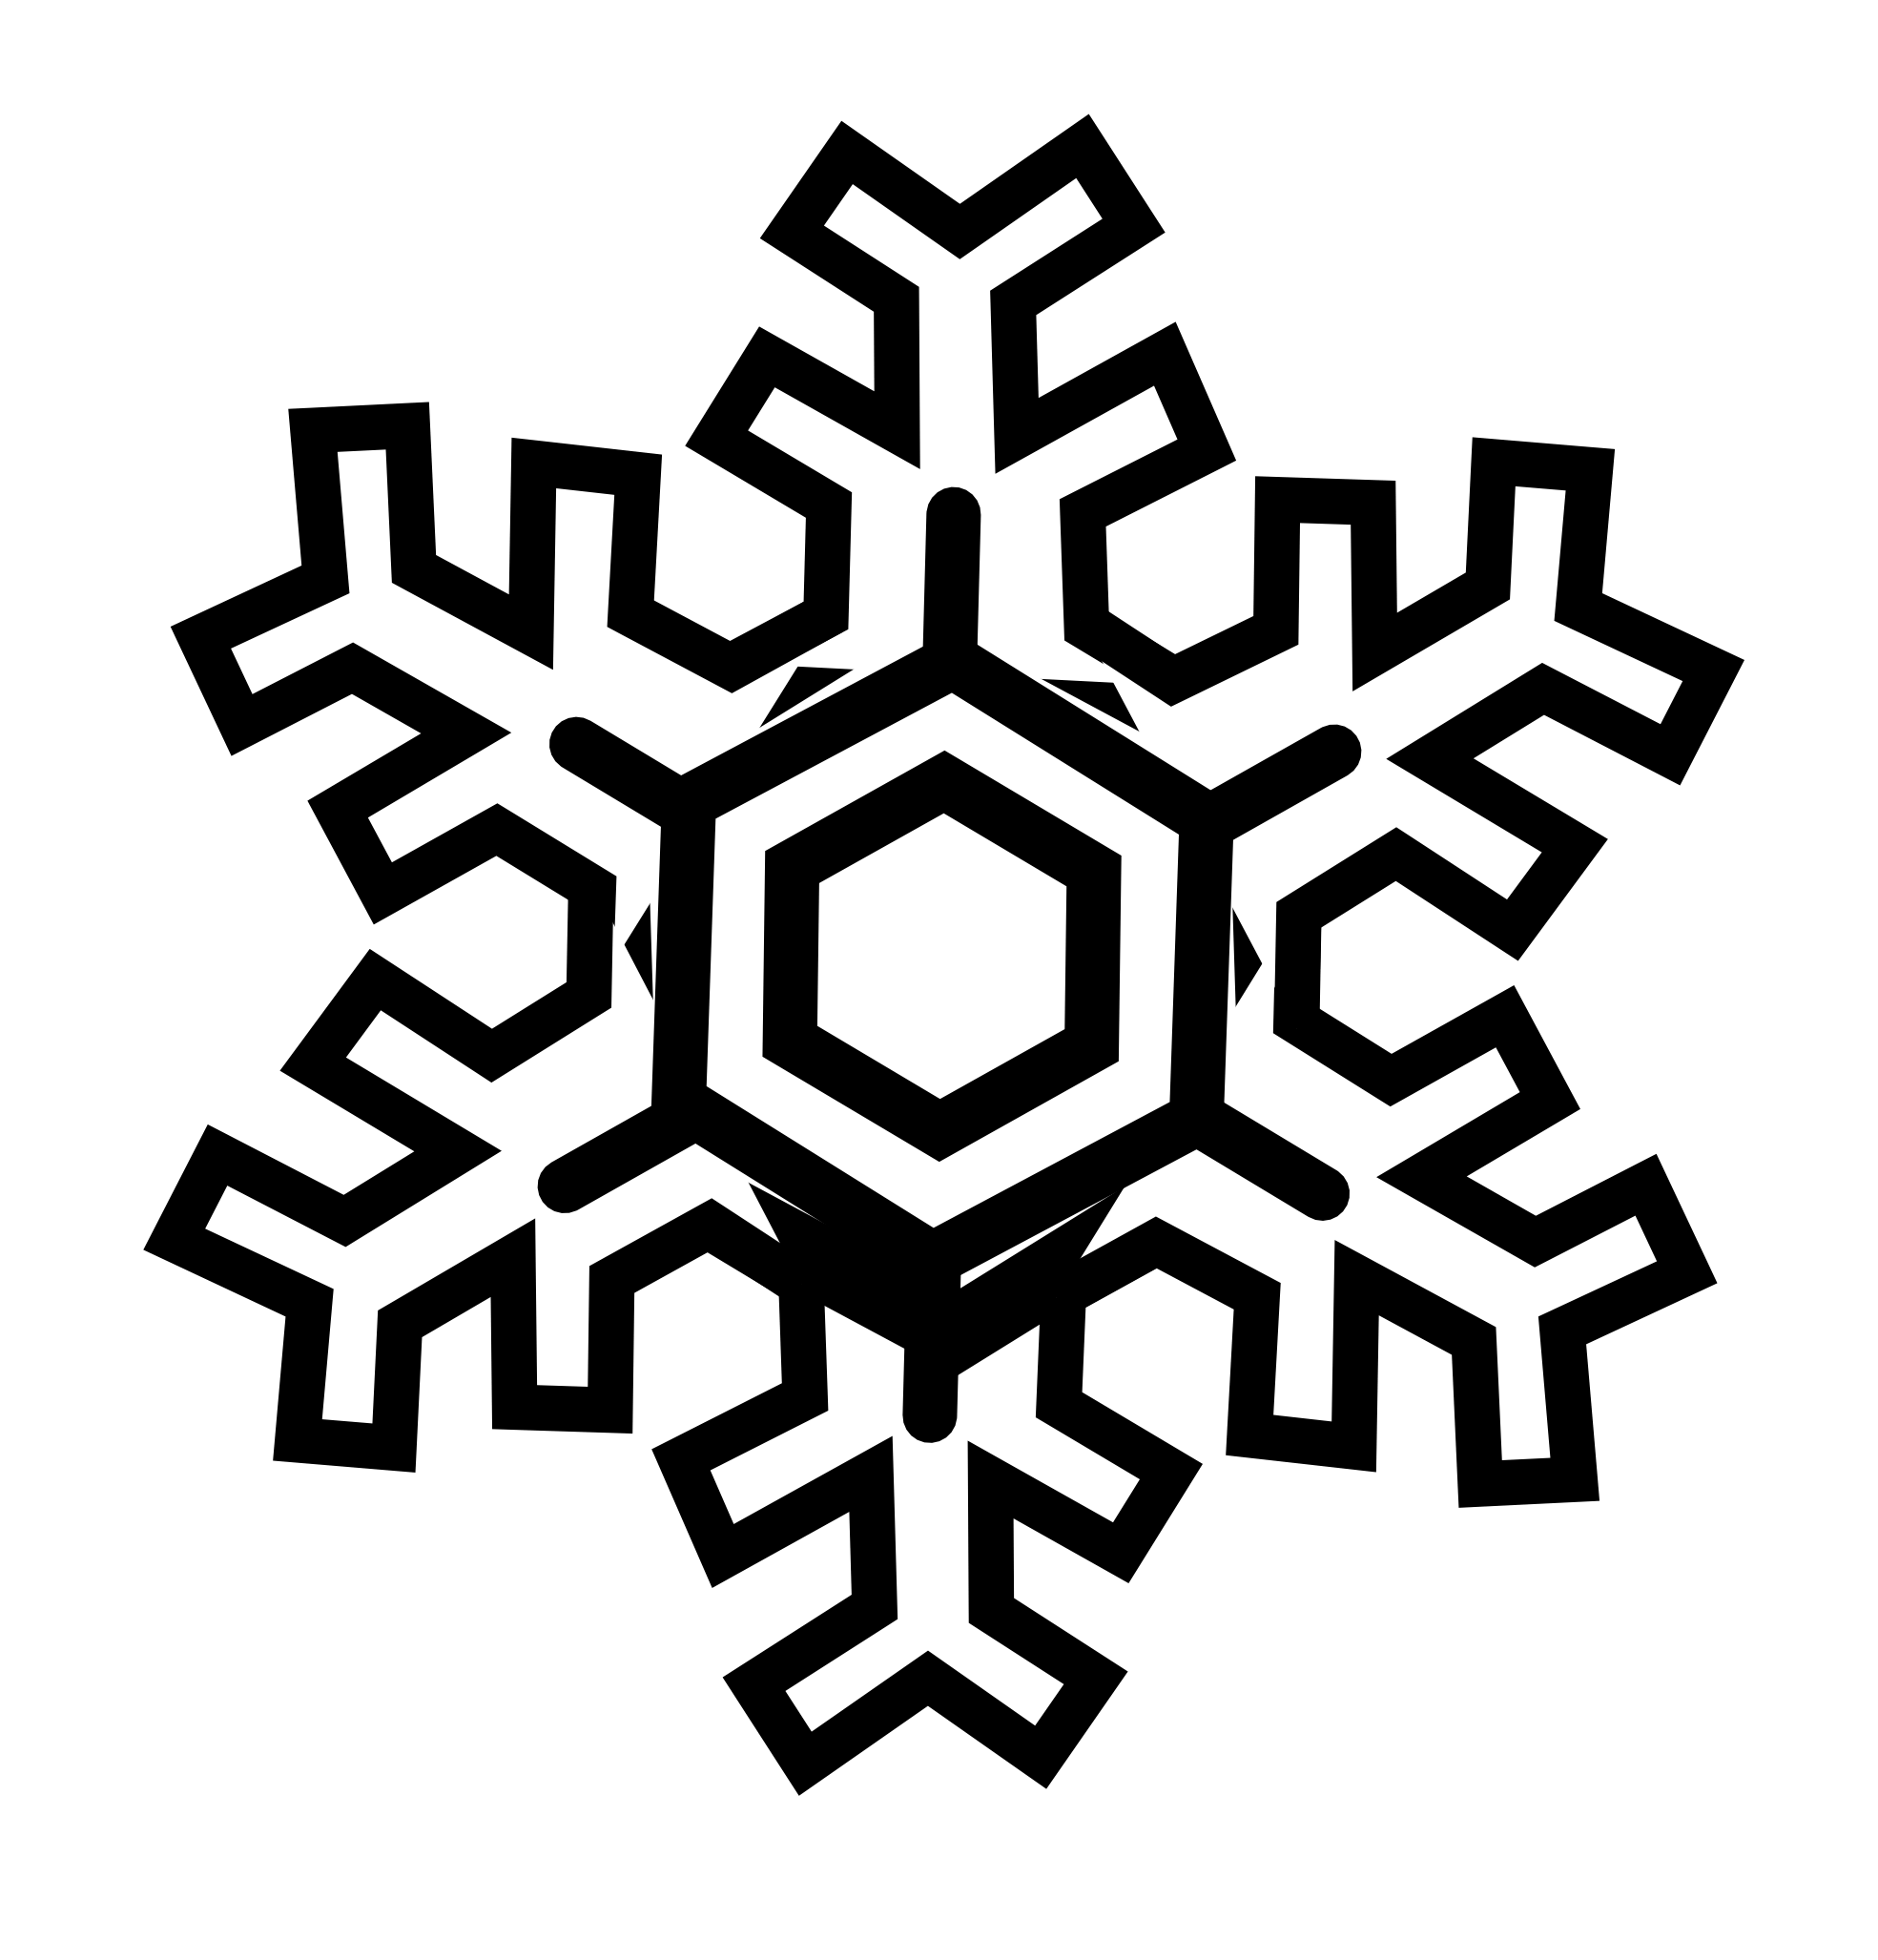 Falling snowflake clipart clip royalty free stock Free Happy Snowflakes Cliparts, Download Free Clip Art, Free Clip ... clip royalty free stock